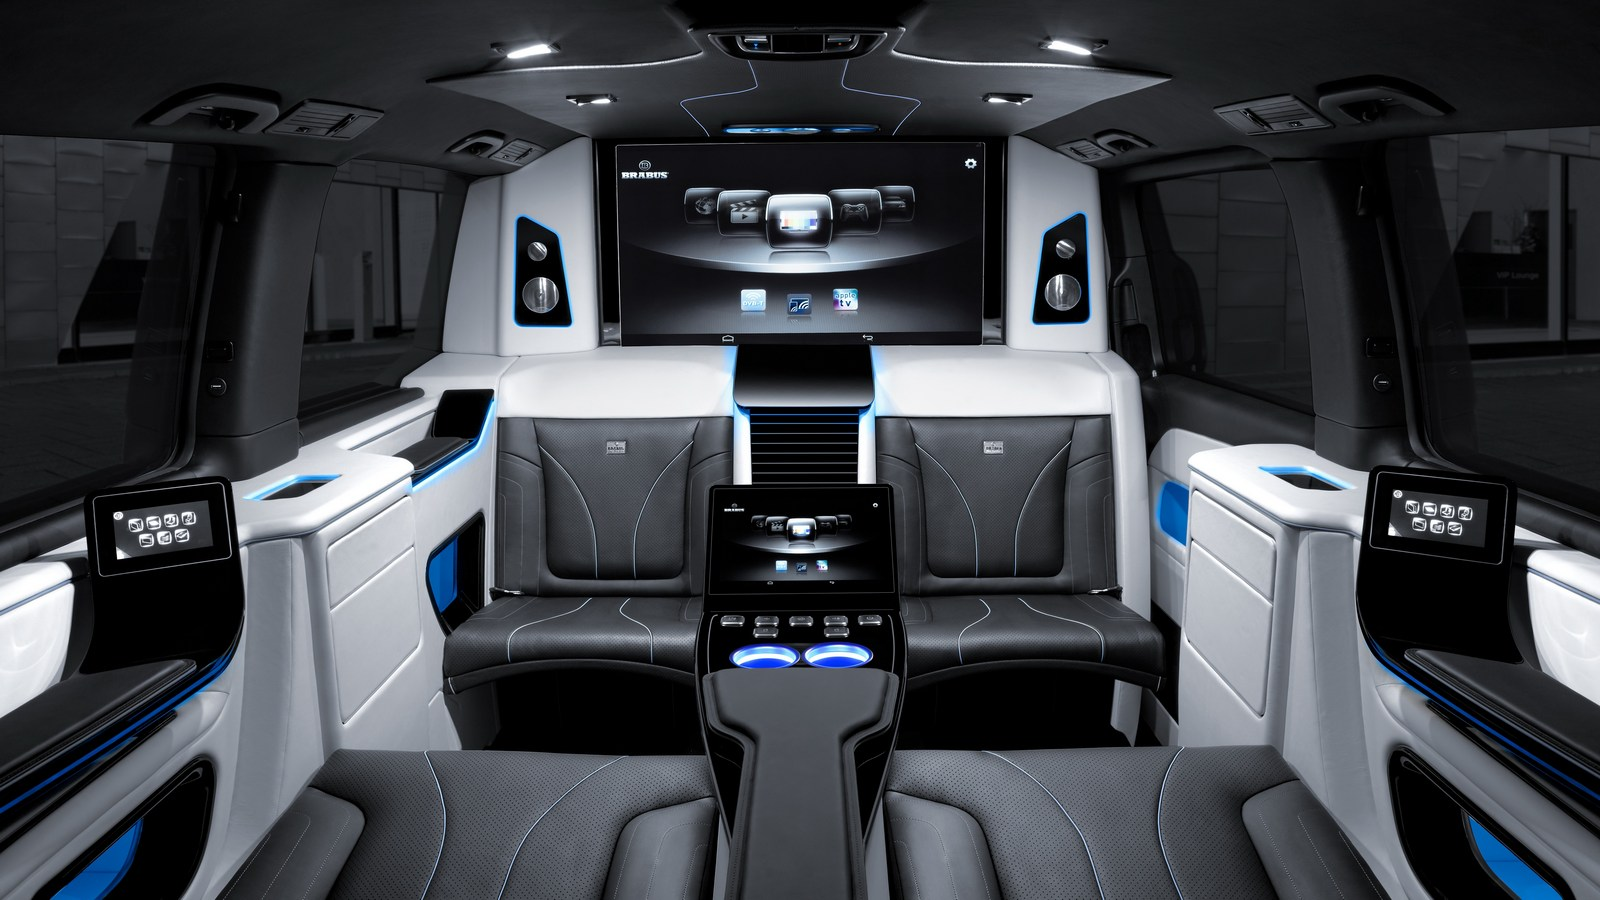 brabus_mercedes-benz_v-klasse_business_lounge_2